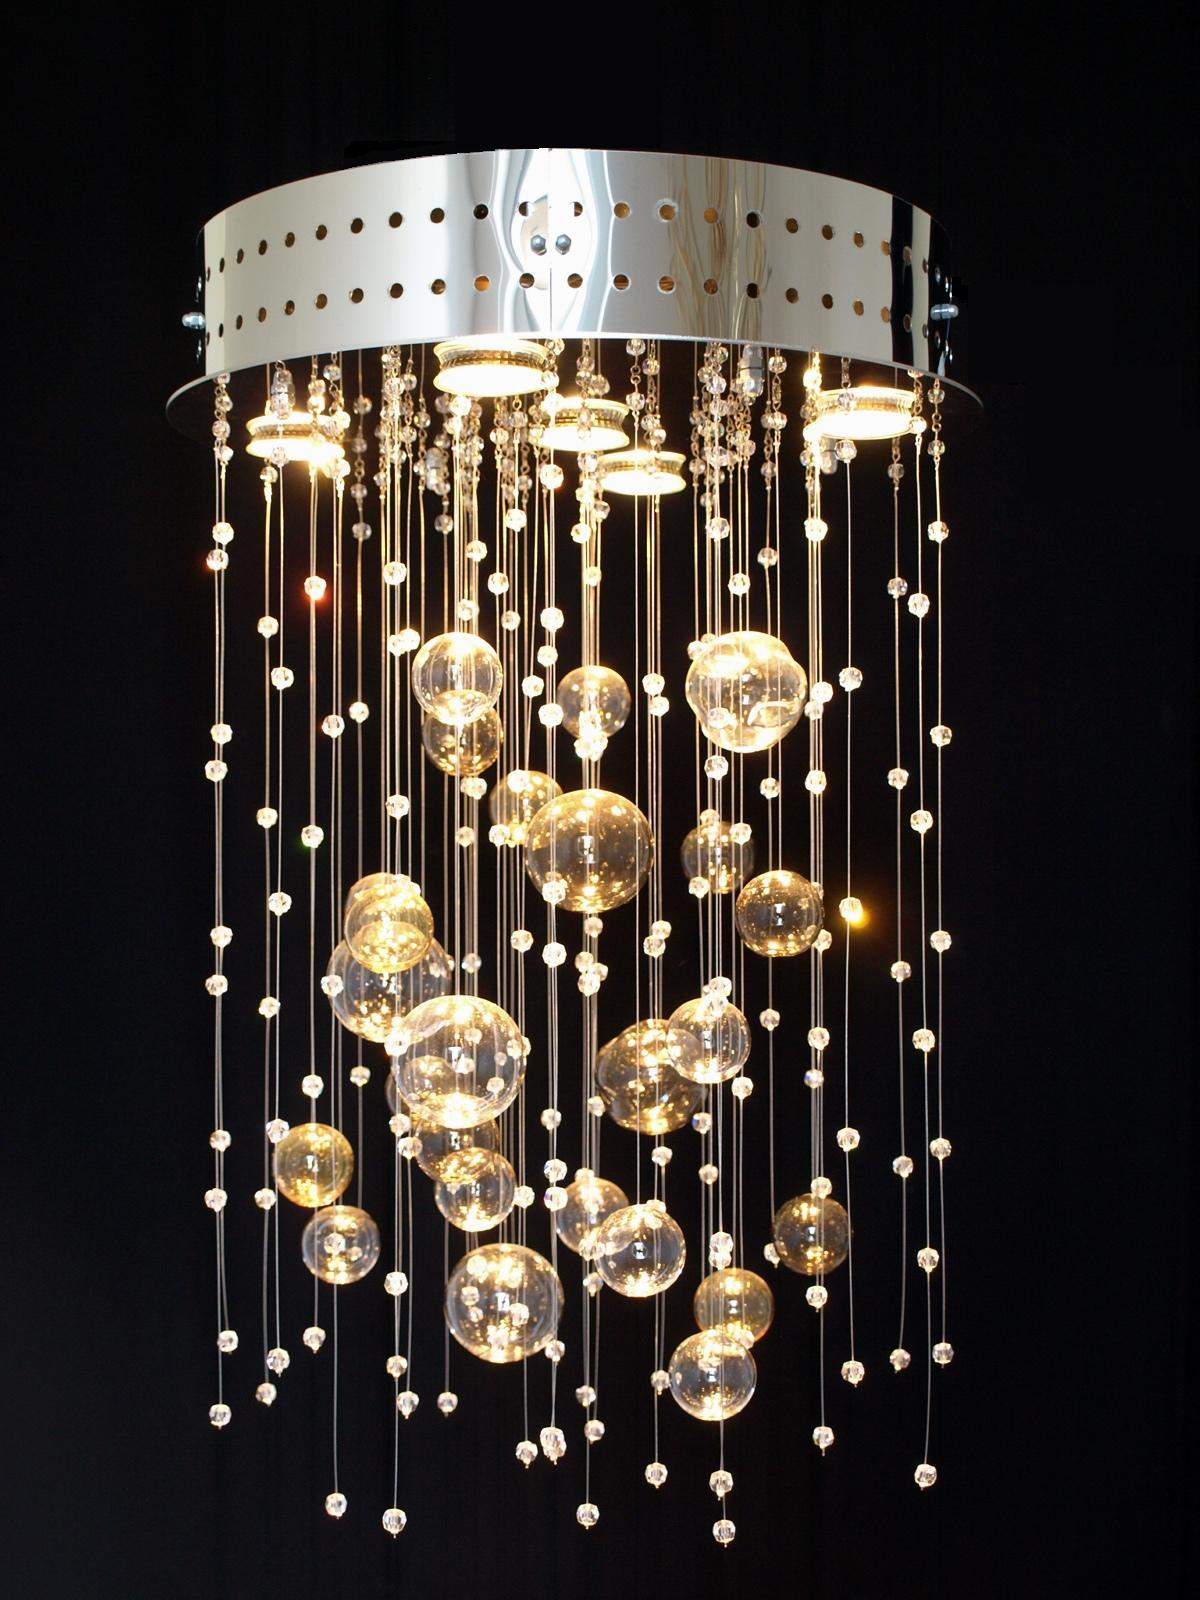 Production crystal light fittings glass chandeliers lighting fixtures lamps.